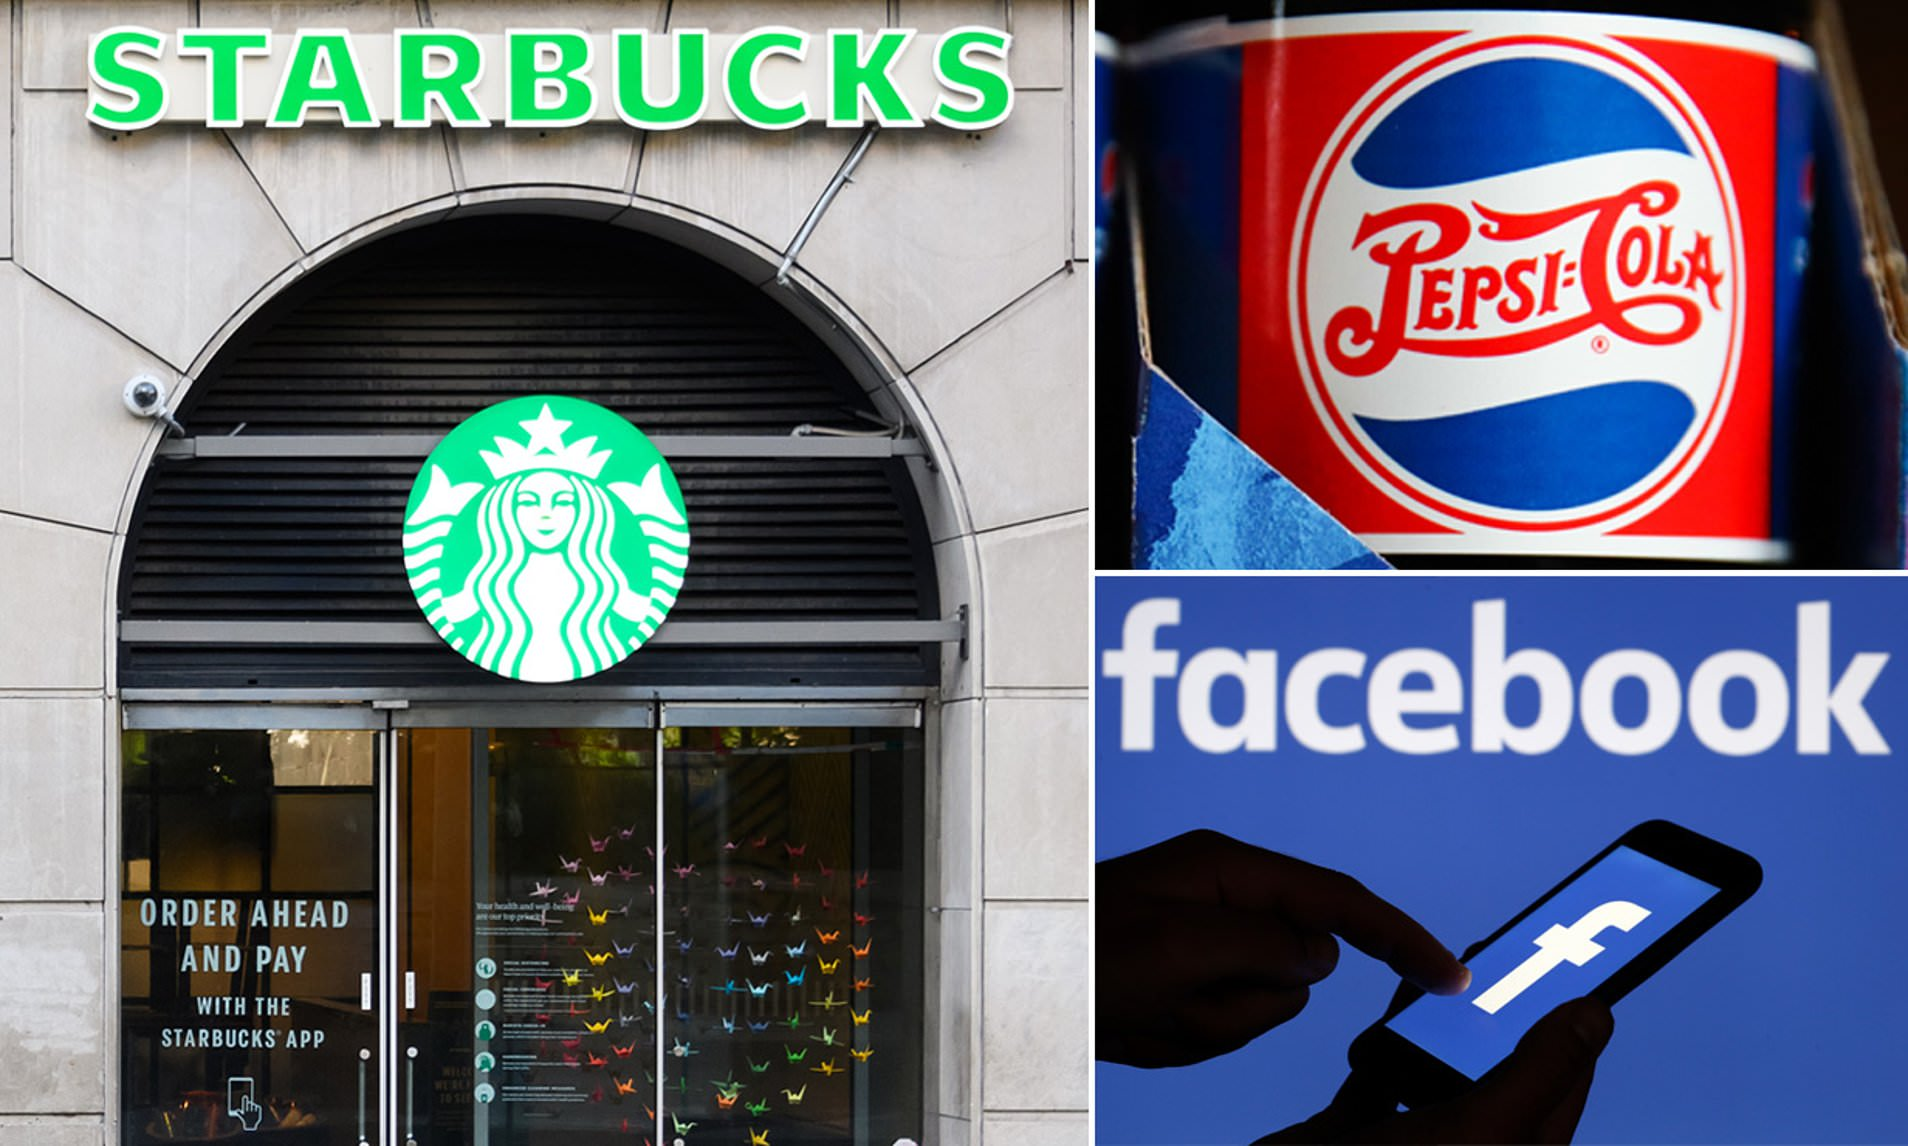 Due to hate speech, Starbucks had suspended the Advertisements on Social Media